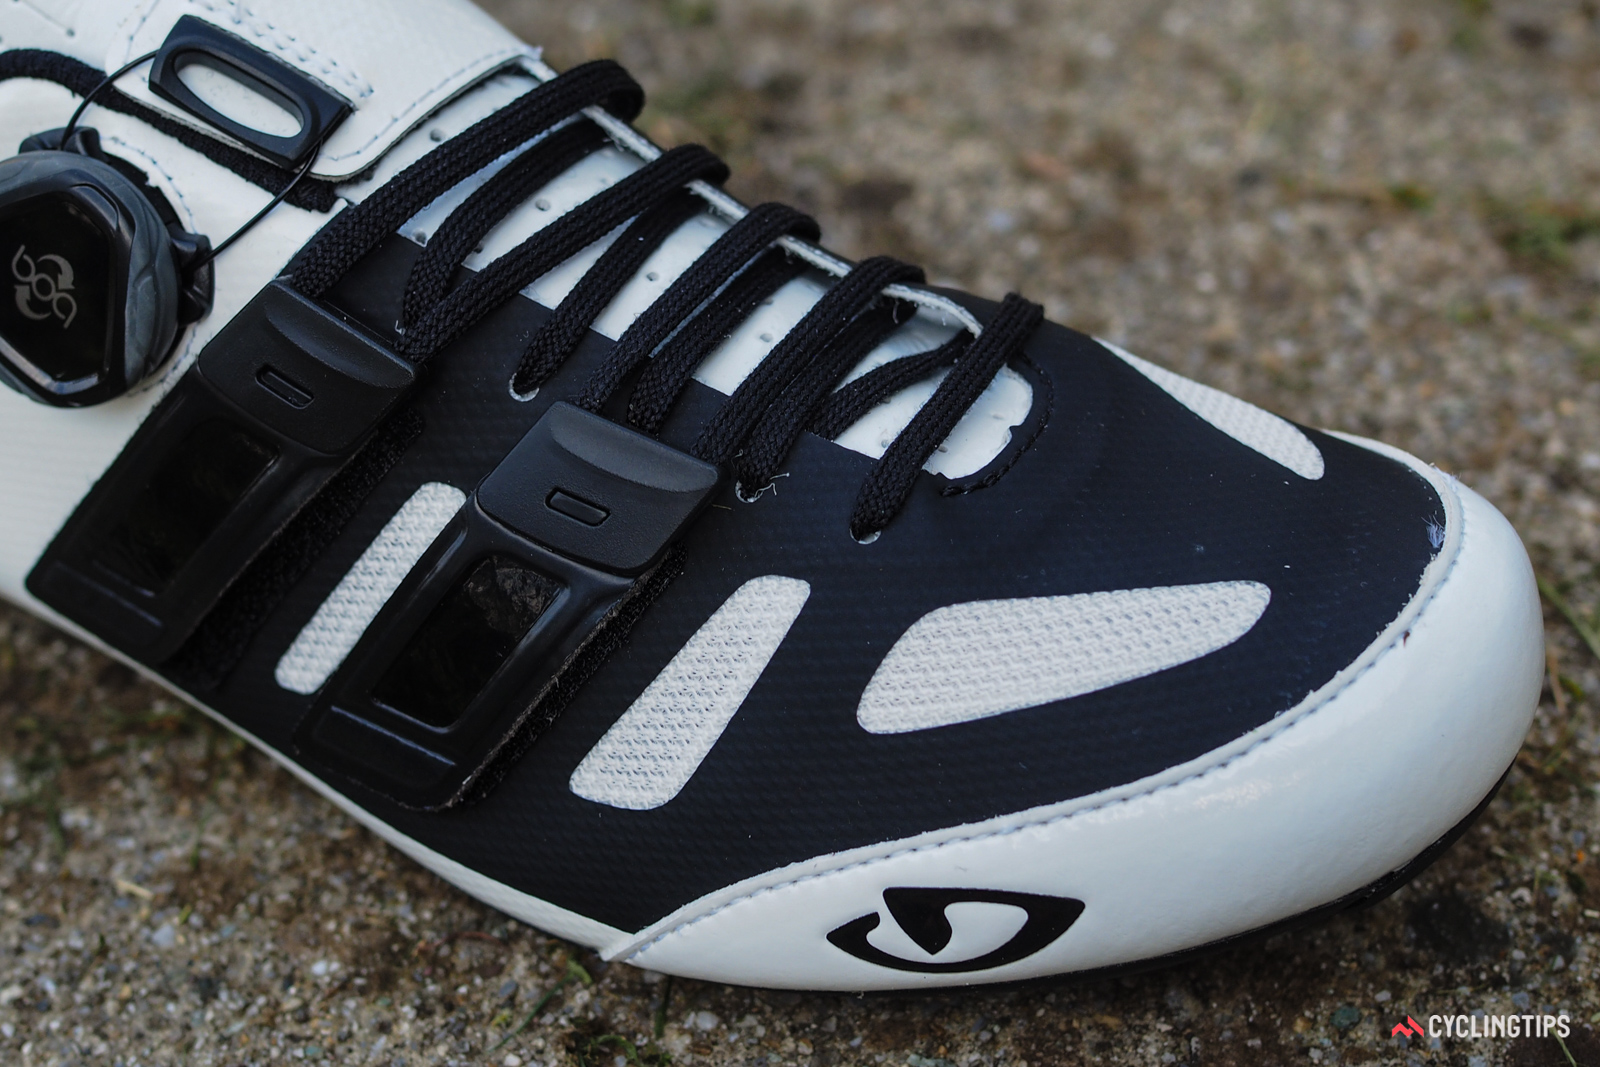 The second-tier Giro Sentrie Techlace and Raes Techlace shoes use more conventional welded and stitched uppers.